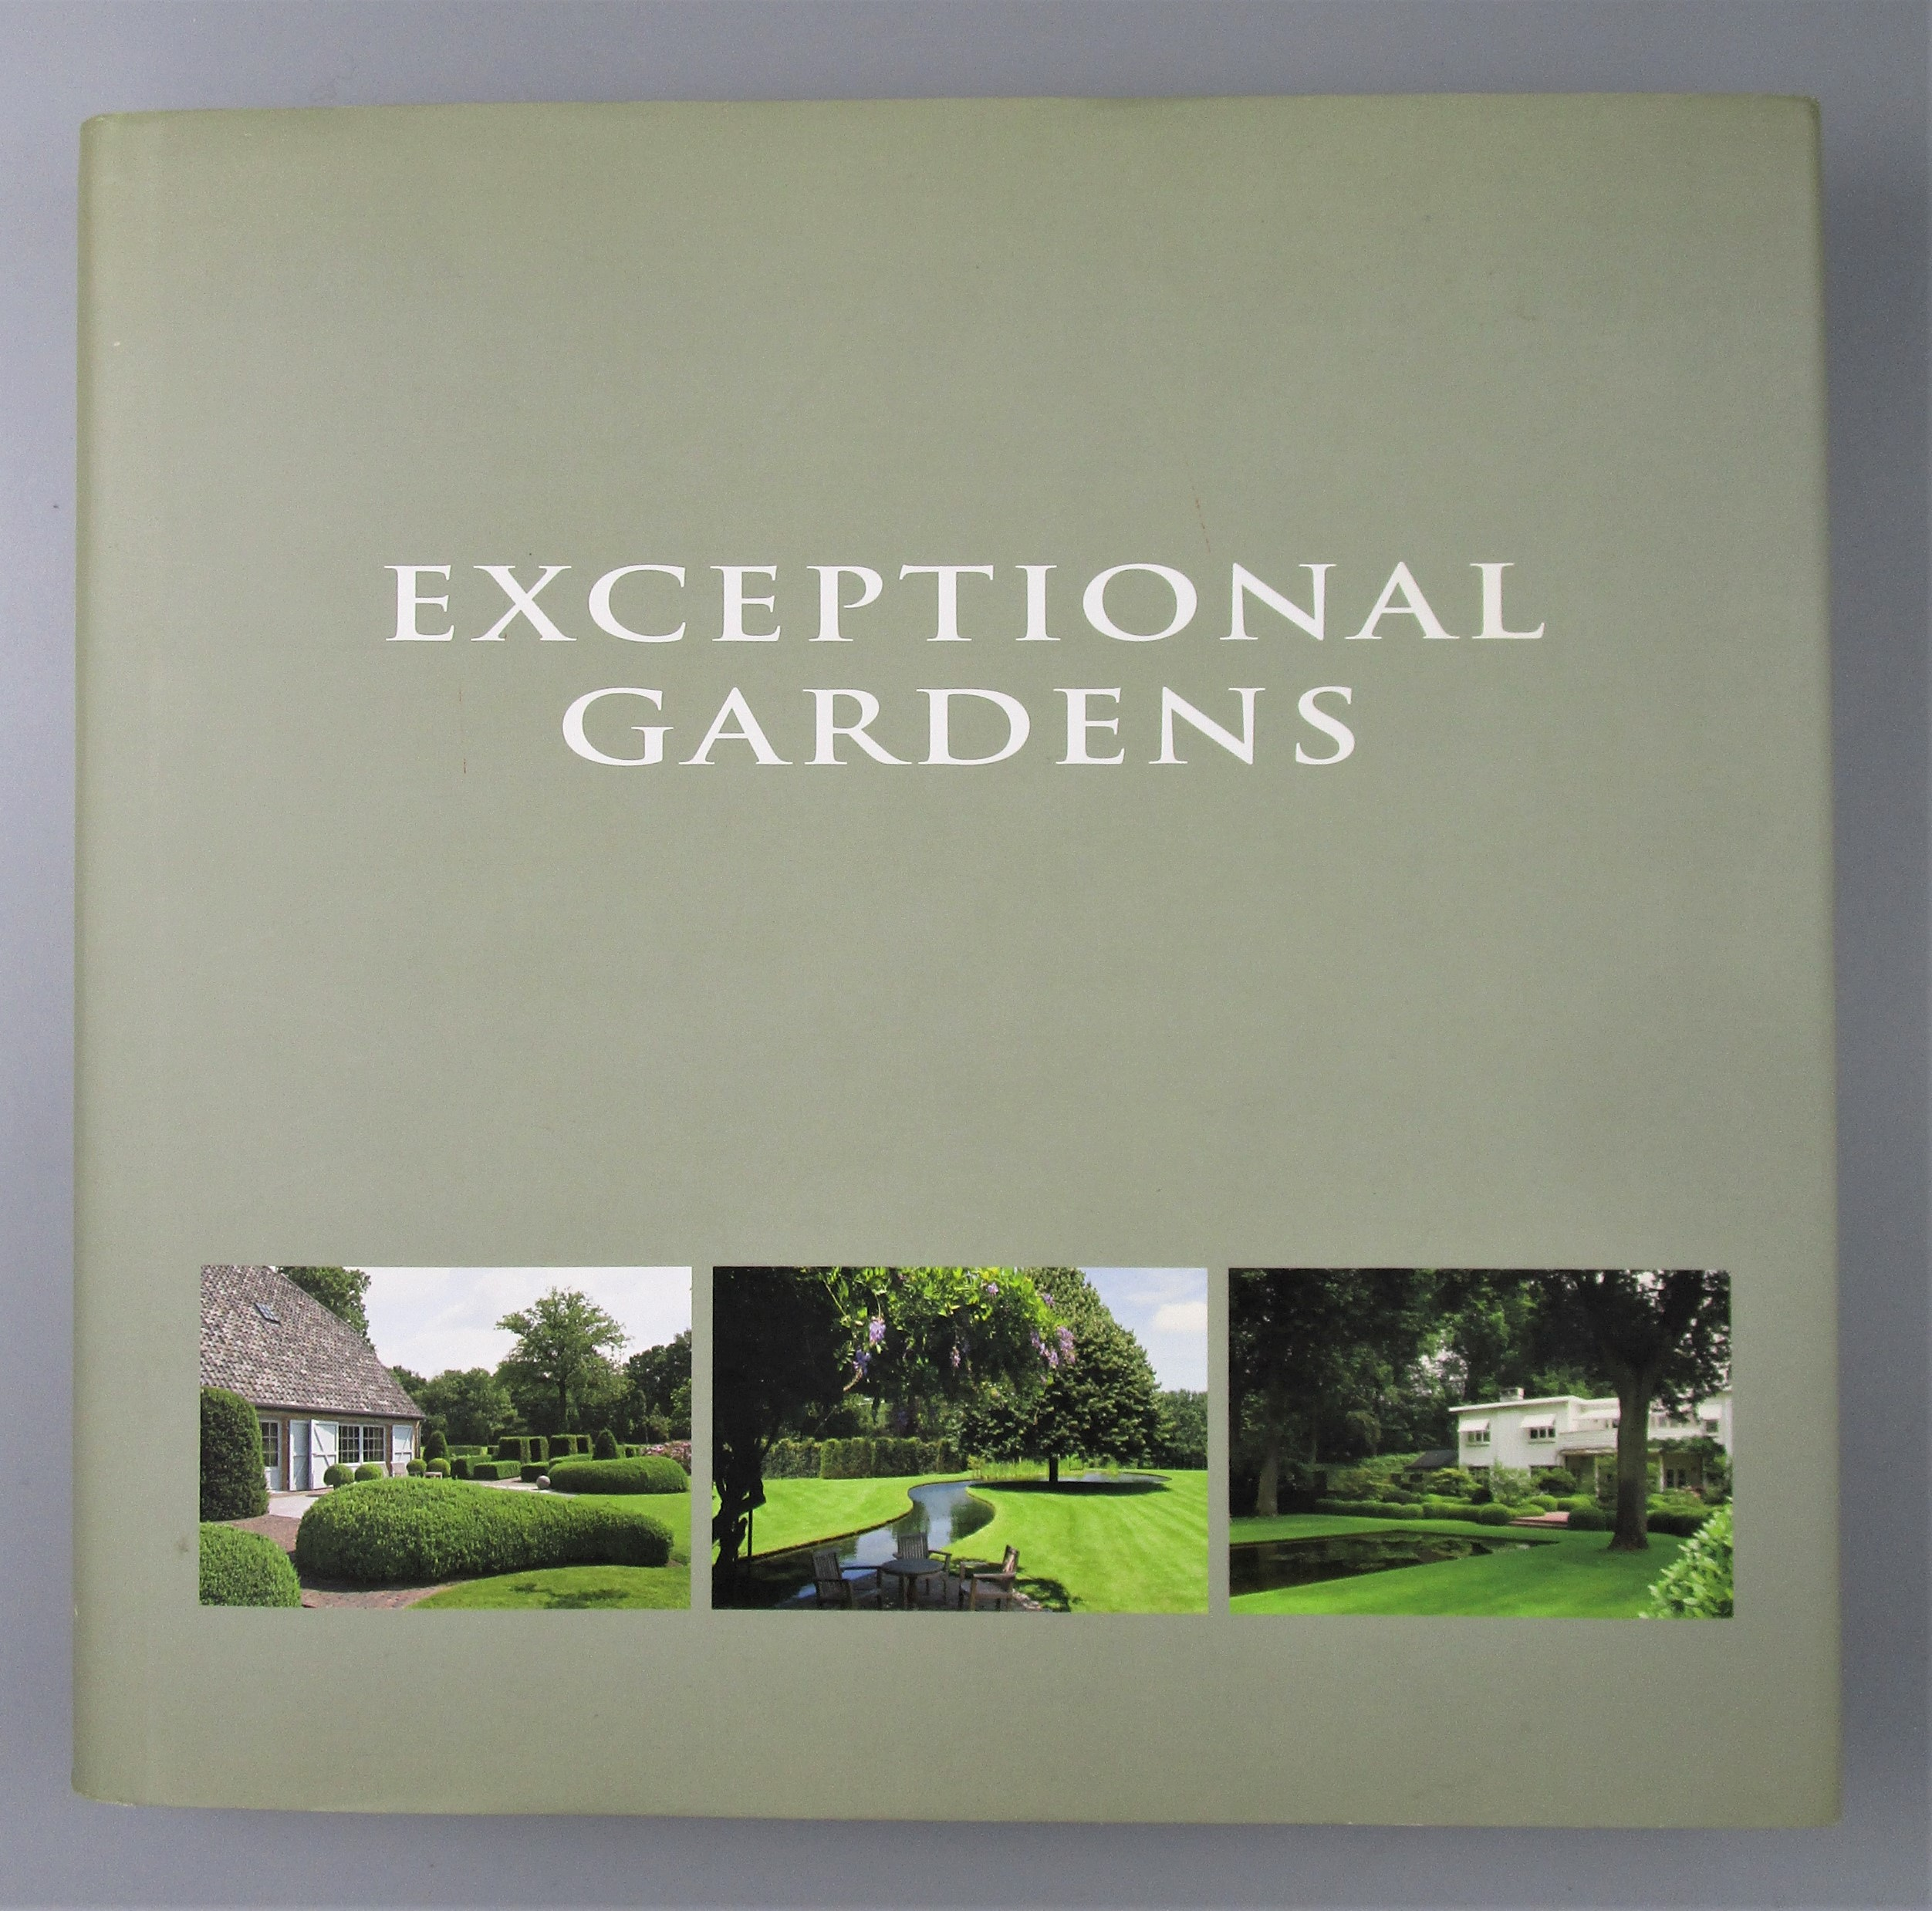 EXCEPTIONAL GARDENS, by Wim Pauwels - 2006